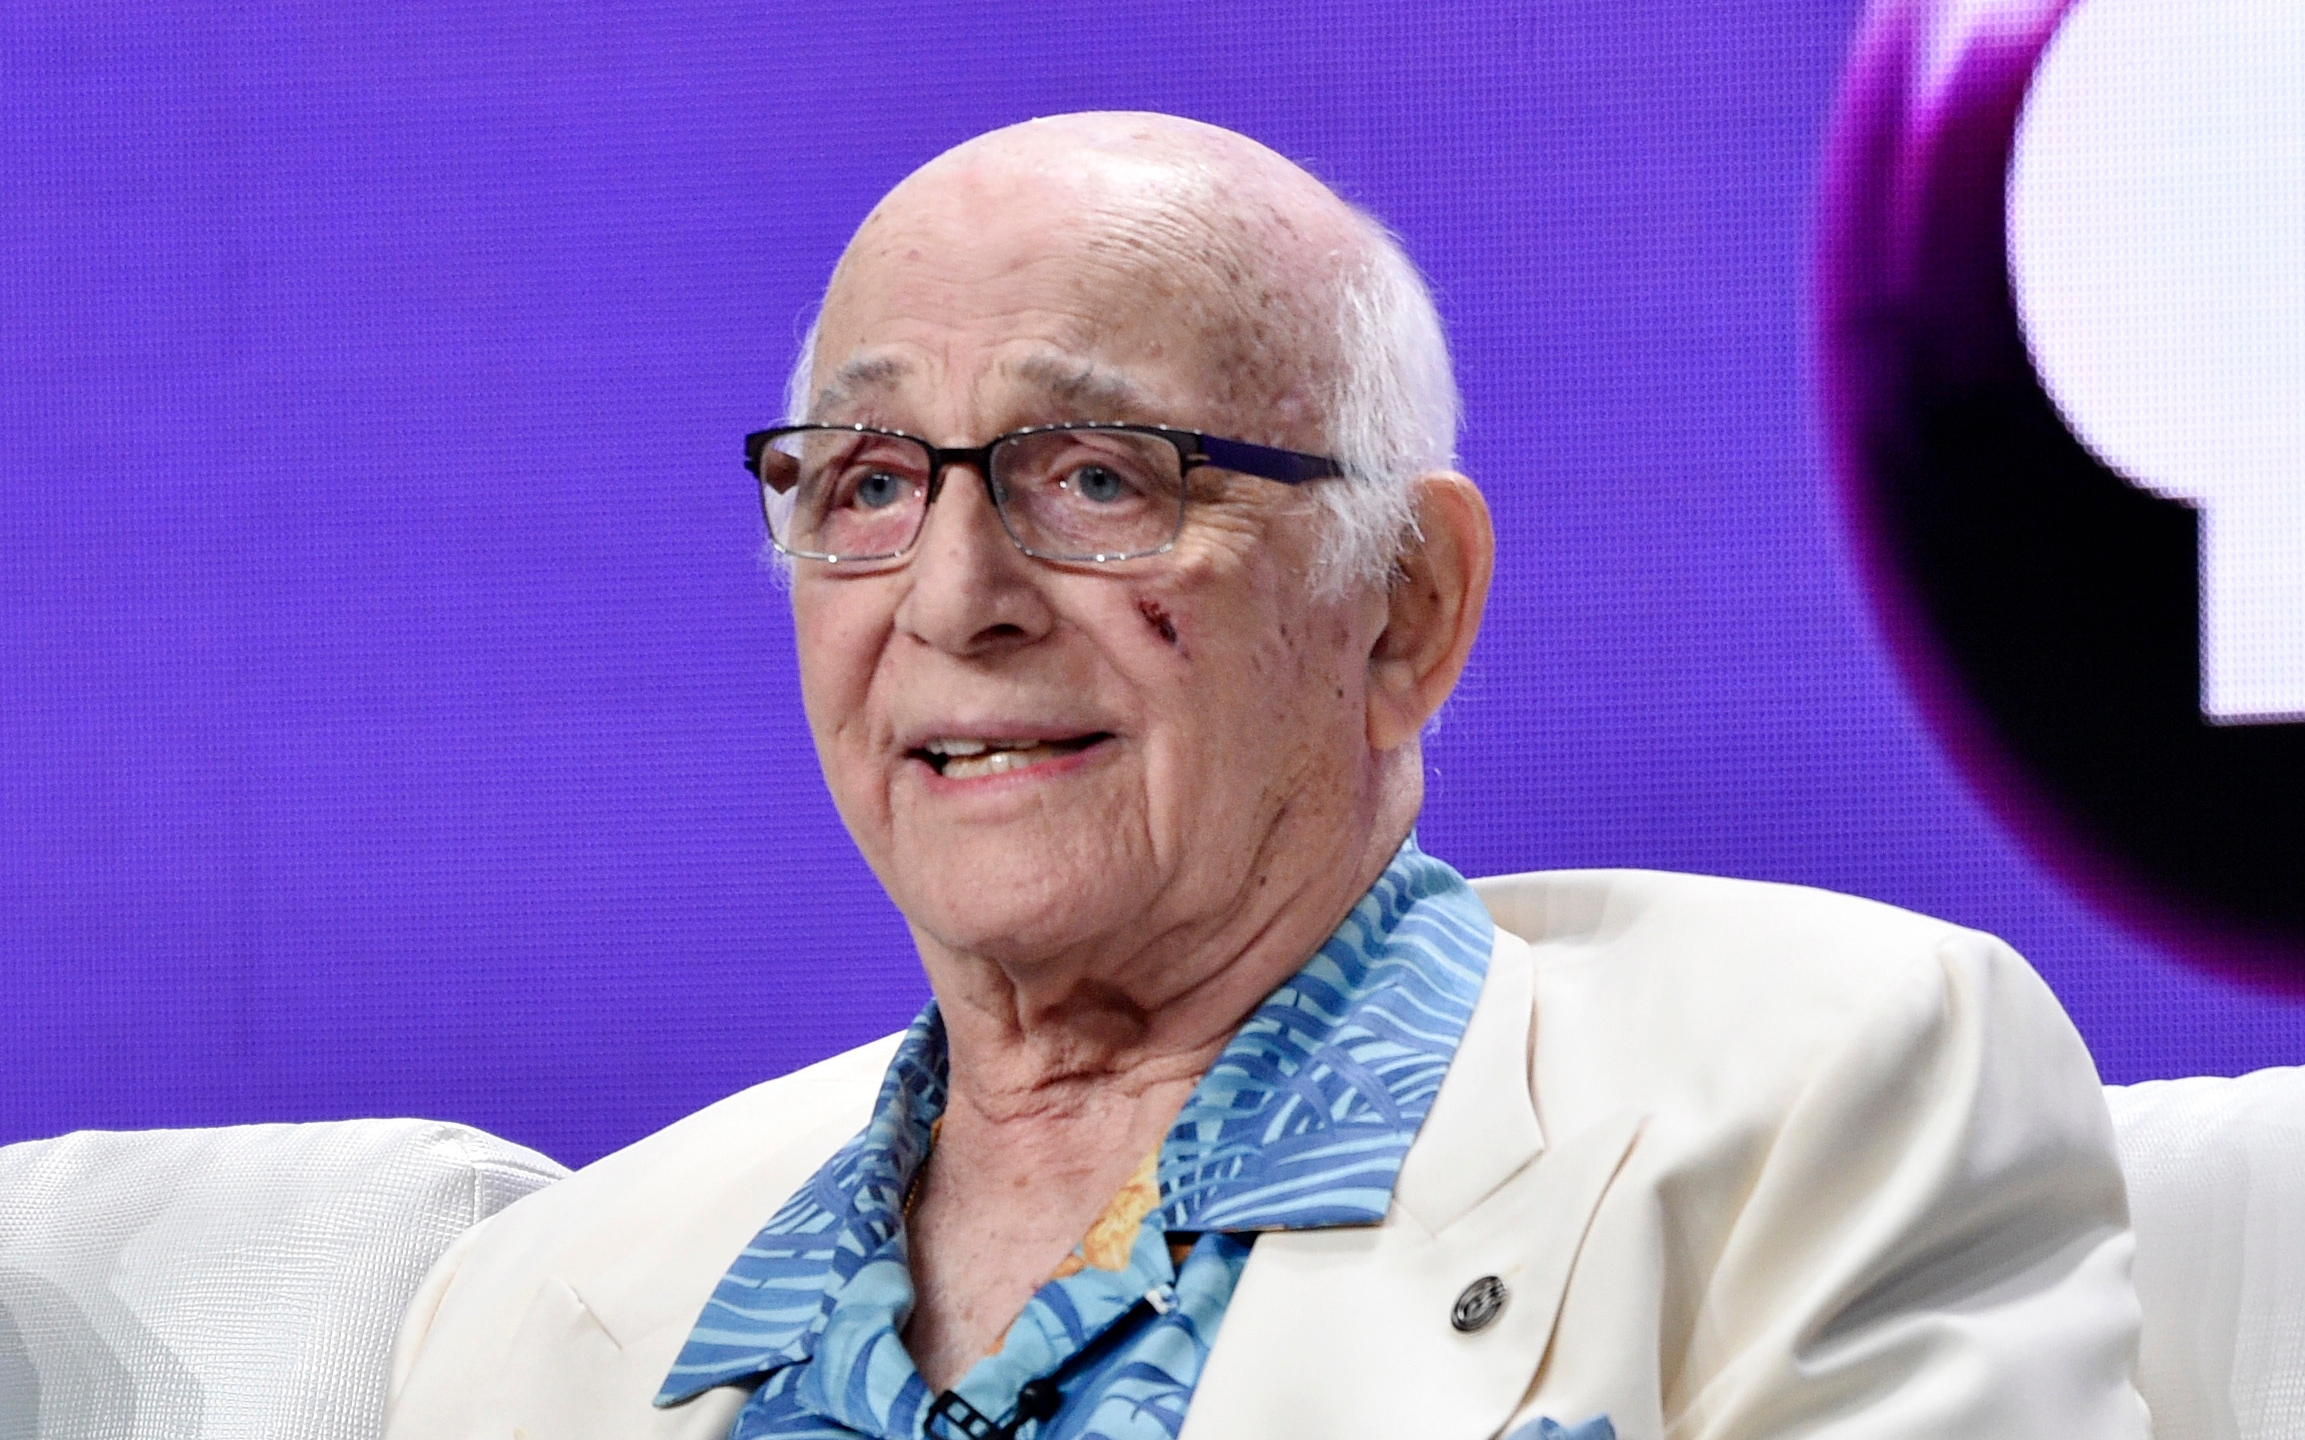 """In this July 31, 2018 file photo shows actor Gavin MacLeod during a panel discussion on the PBS special """"Betty White: First Lady of Television"""" during the 2018 Television Critics Association Summer Press Tour at the Beverly Hilton in Beverly Hills, Calif. (Chris Pizzello/Invision/AP, File)"""